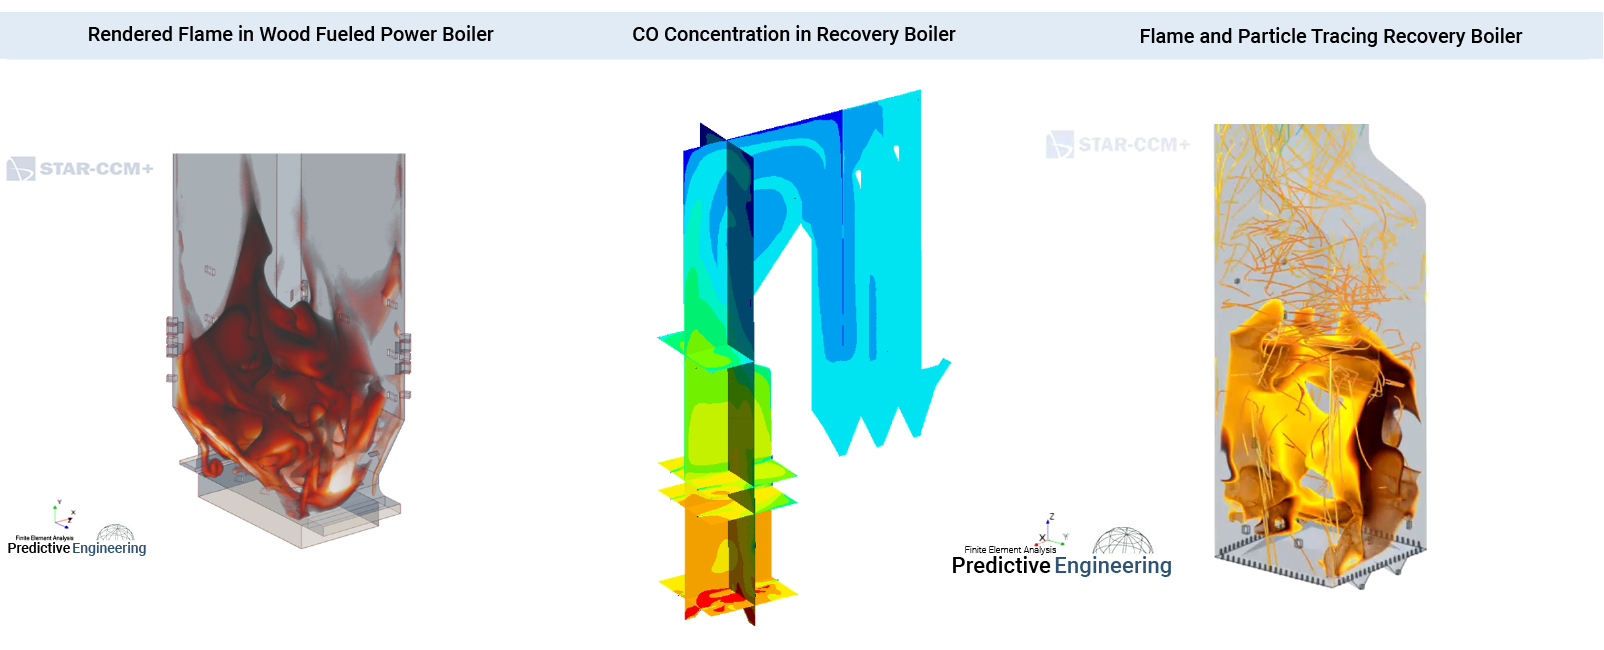 Combustion Boiler Recovery CFD Simulation Ash Content and Particulate Generation - CFD Services